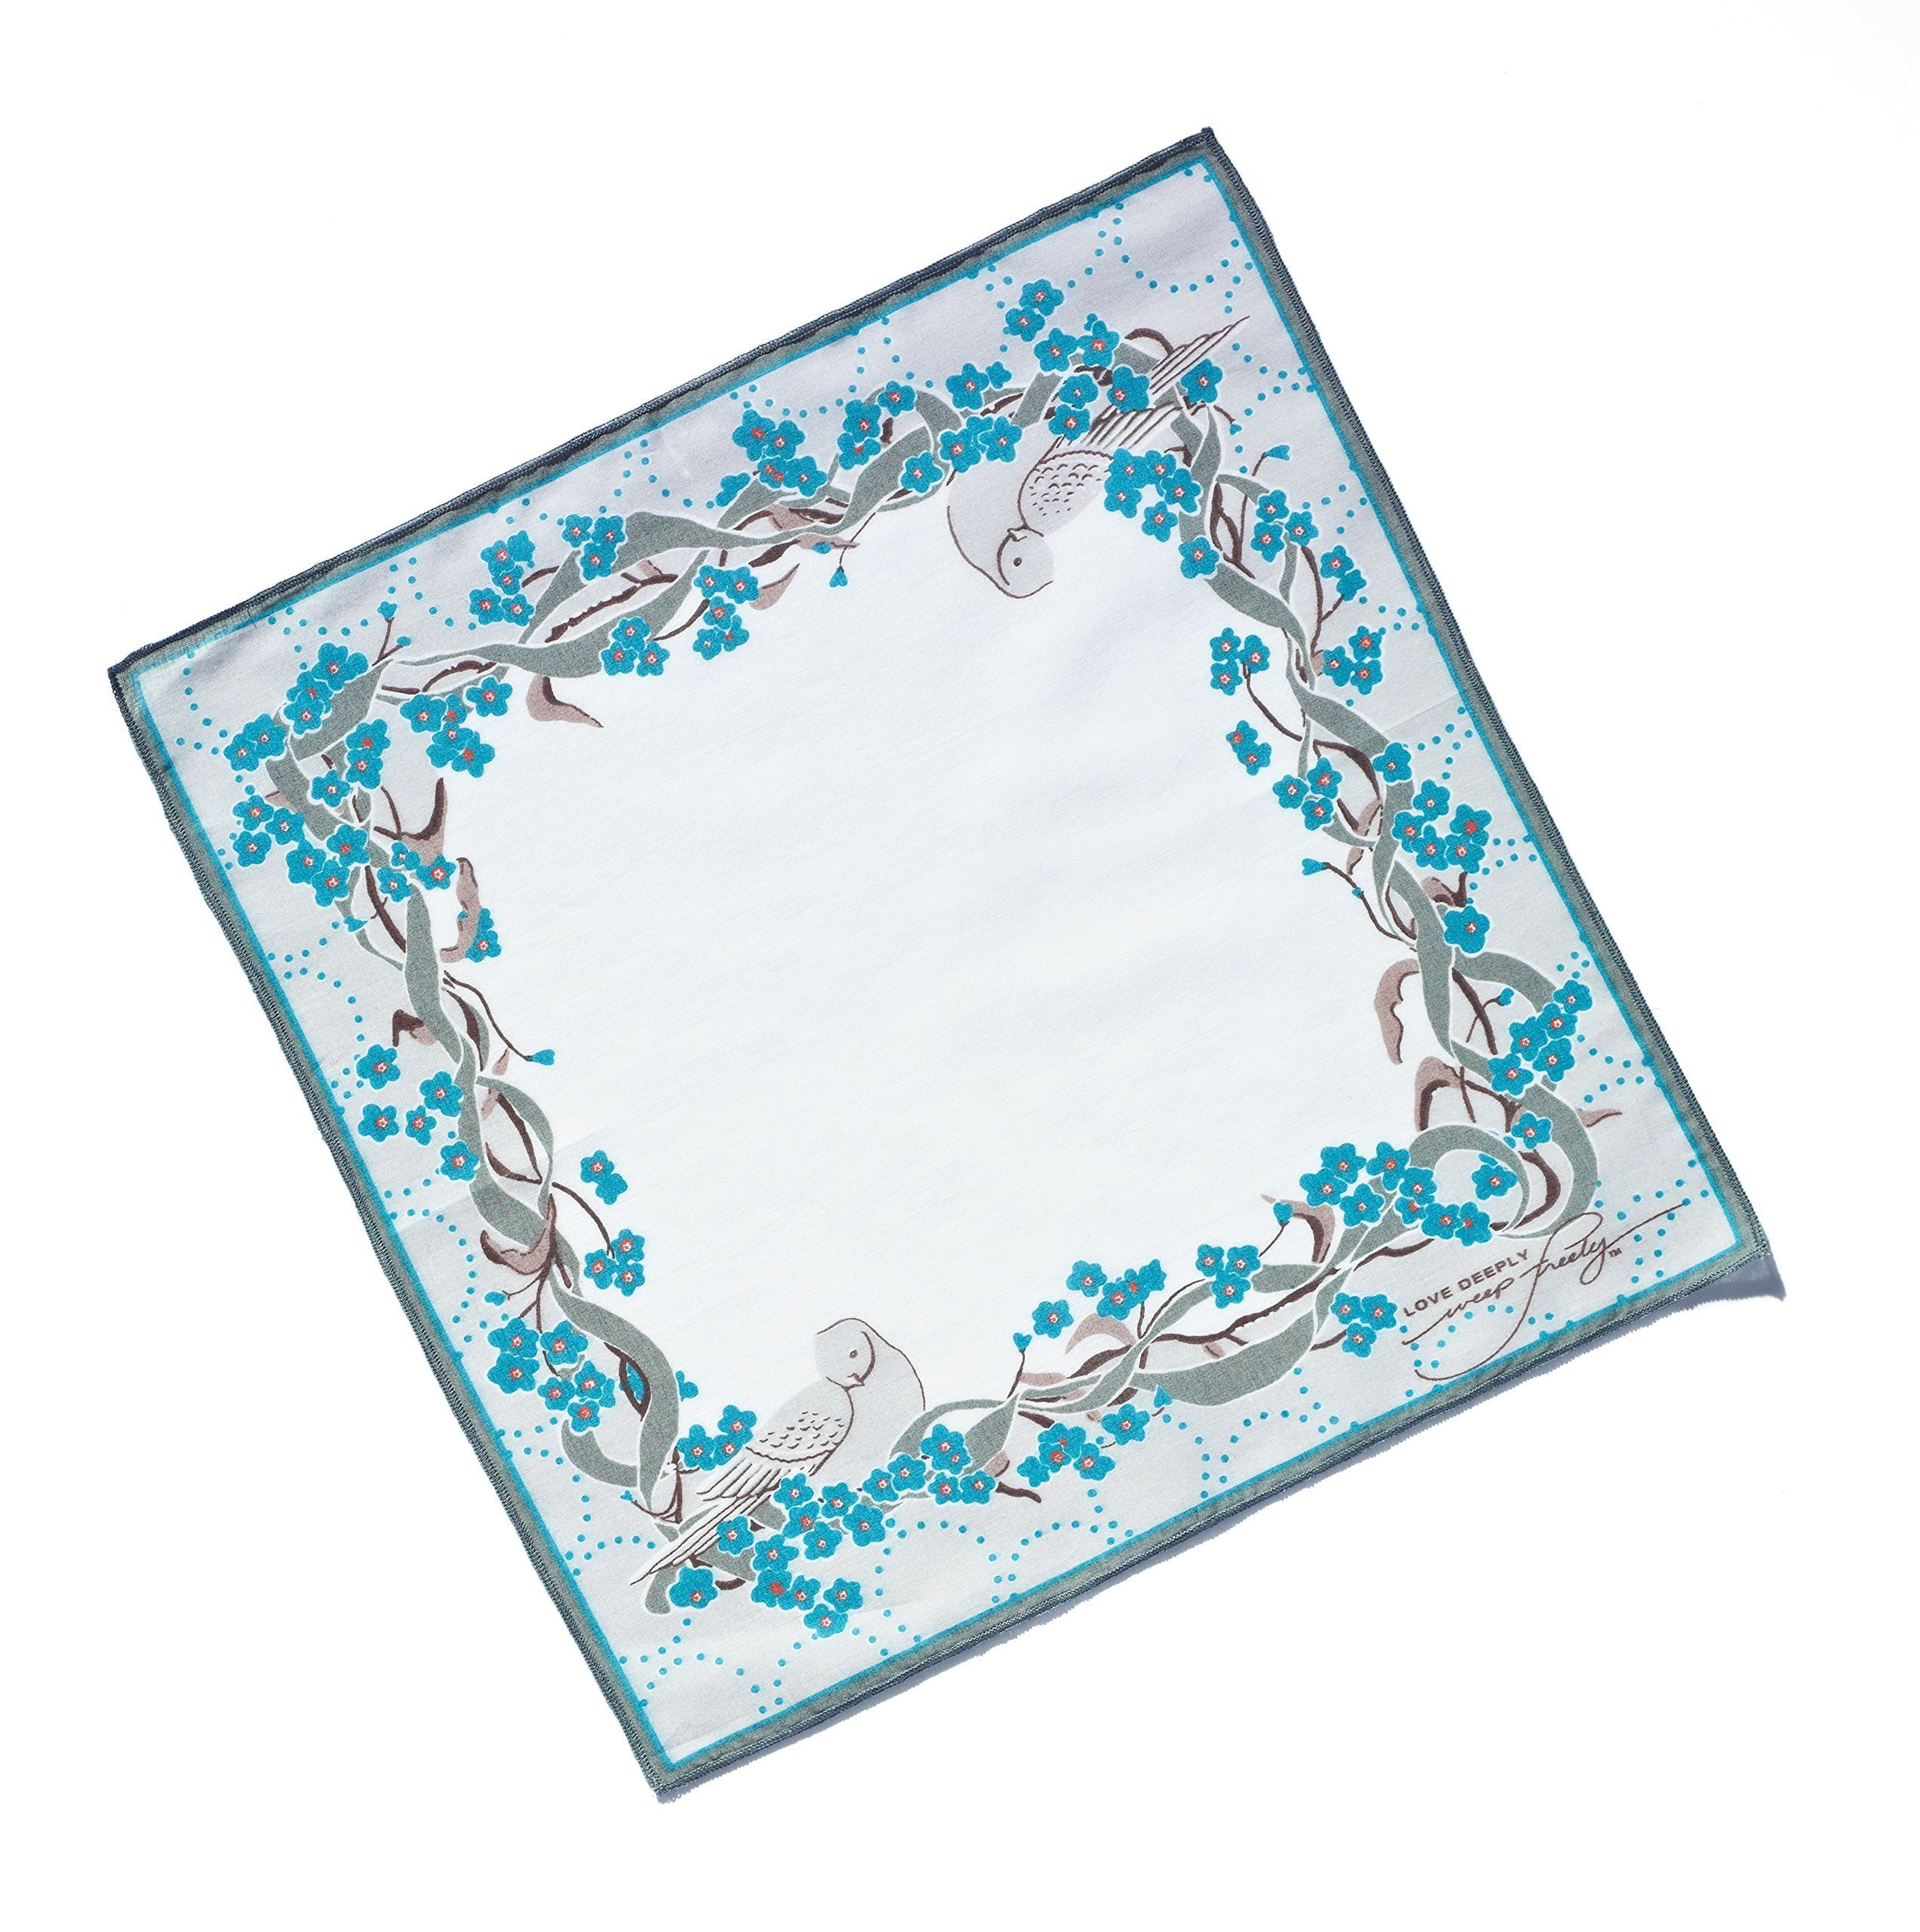 Premium REMEMBRANCE gift handkerchief and card by LOVE DEEPLY~weep freely Handkerchiefs